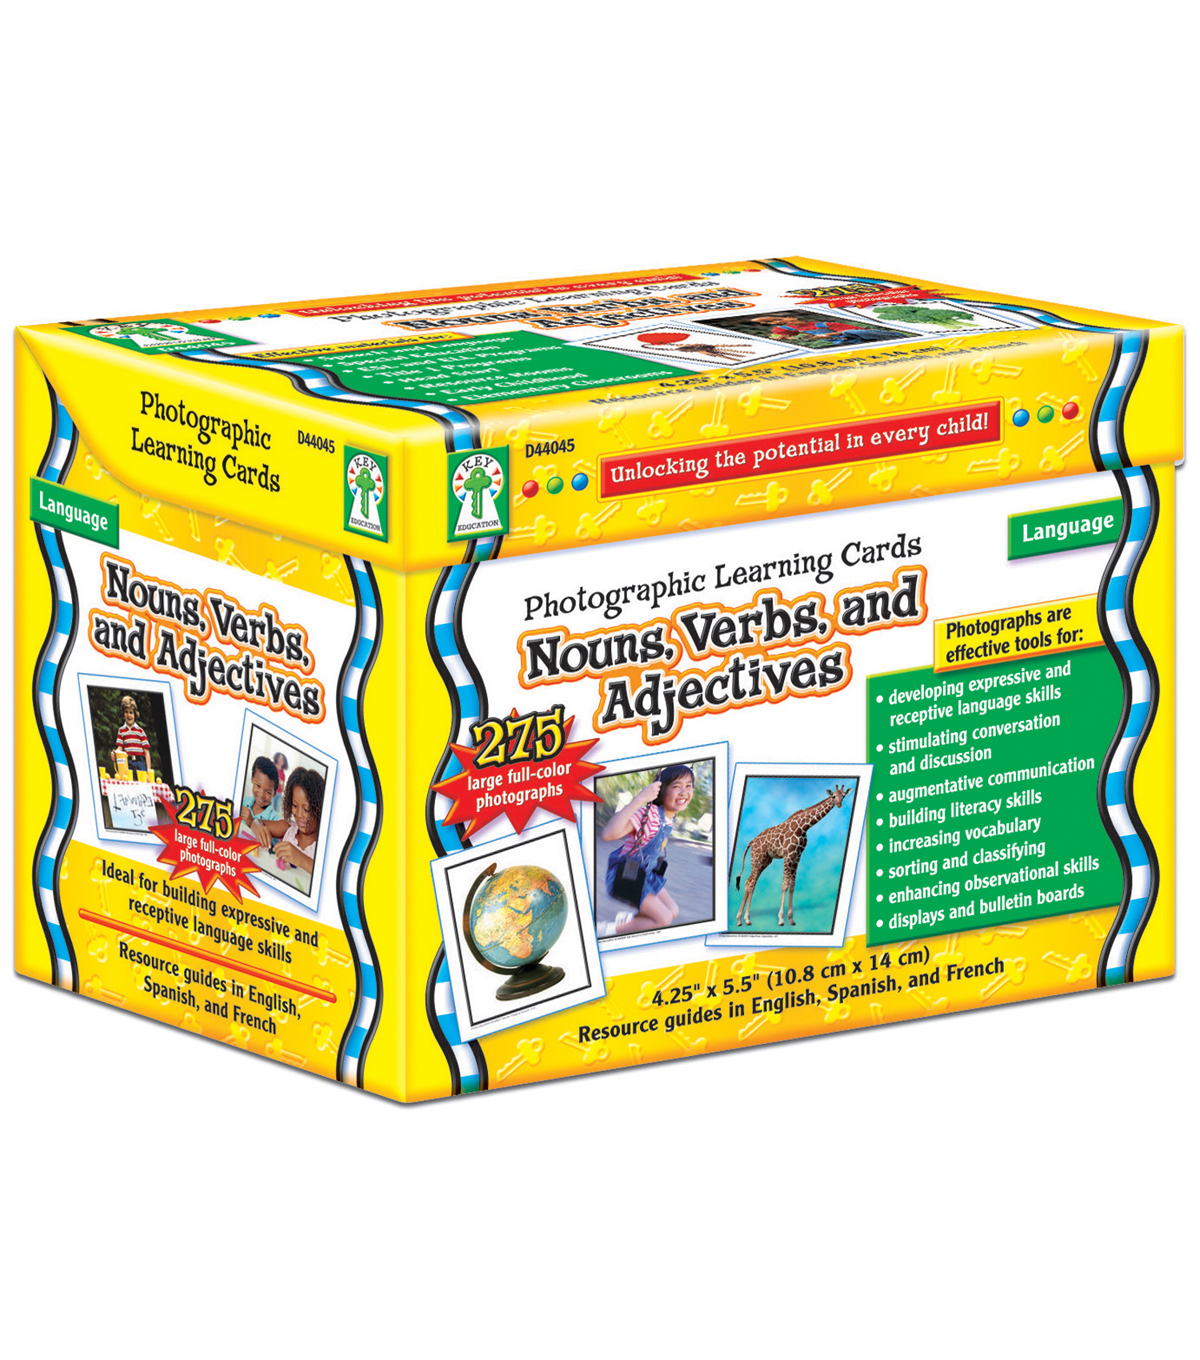 Carson-Dellosa Nouns, Verbs, and Adjectives Photographic Learning Cards